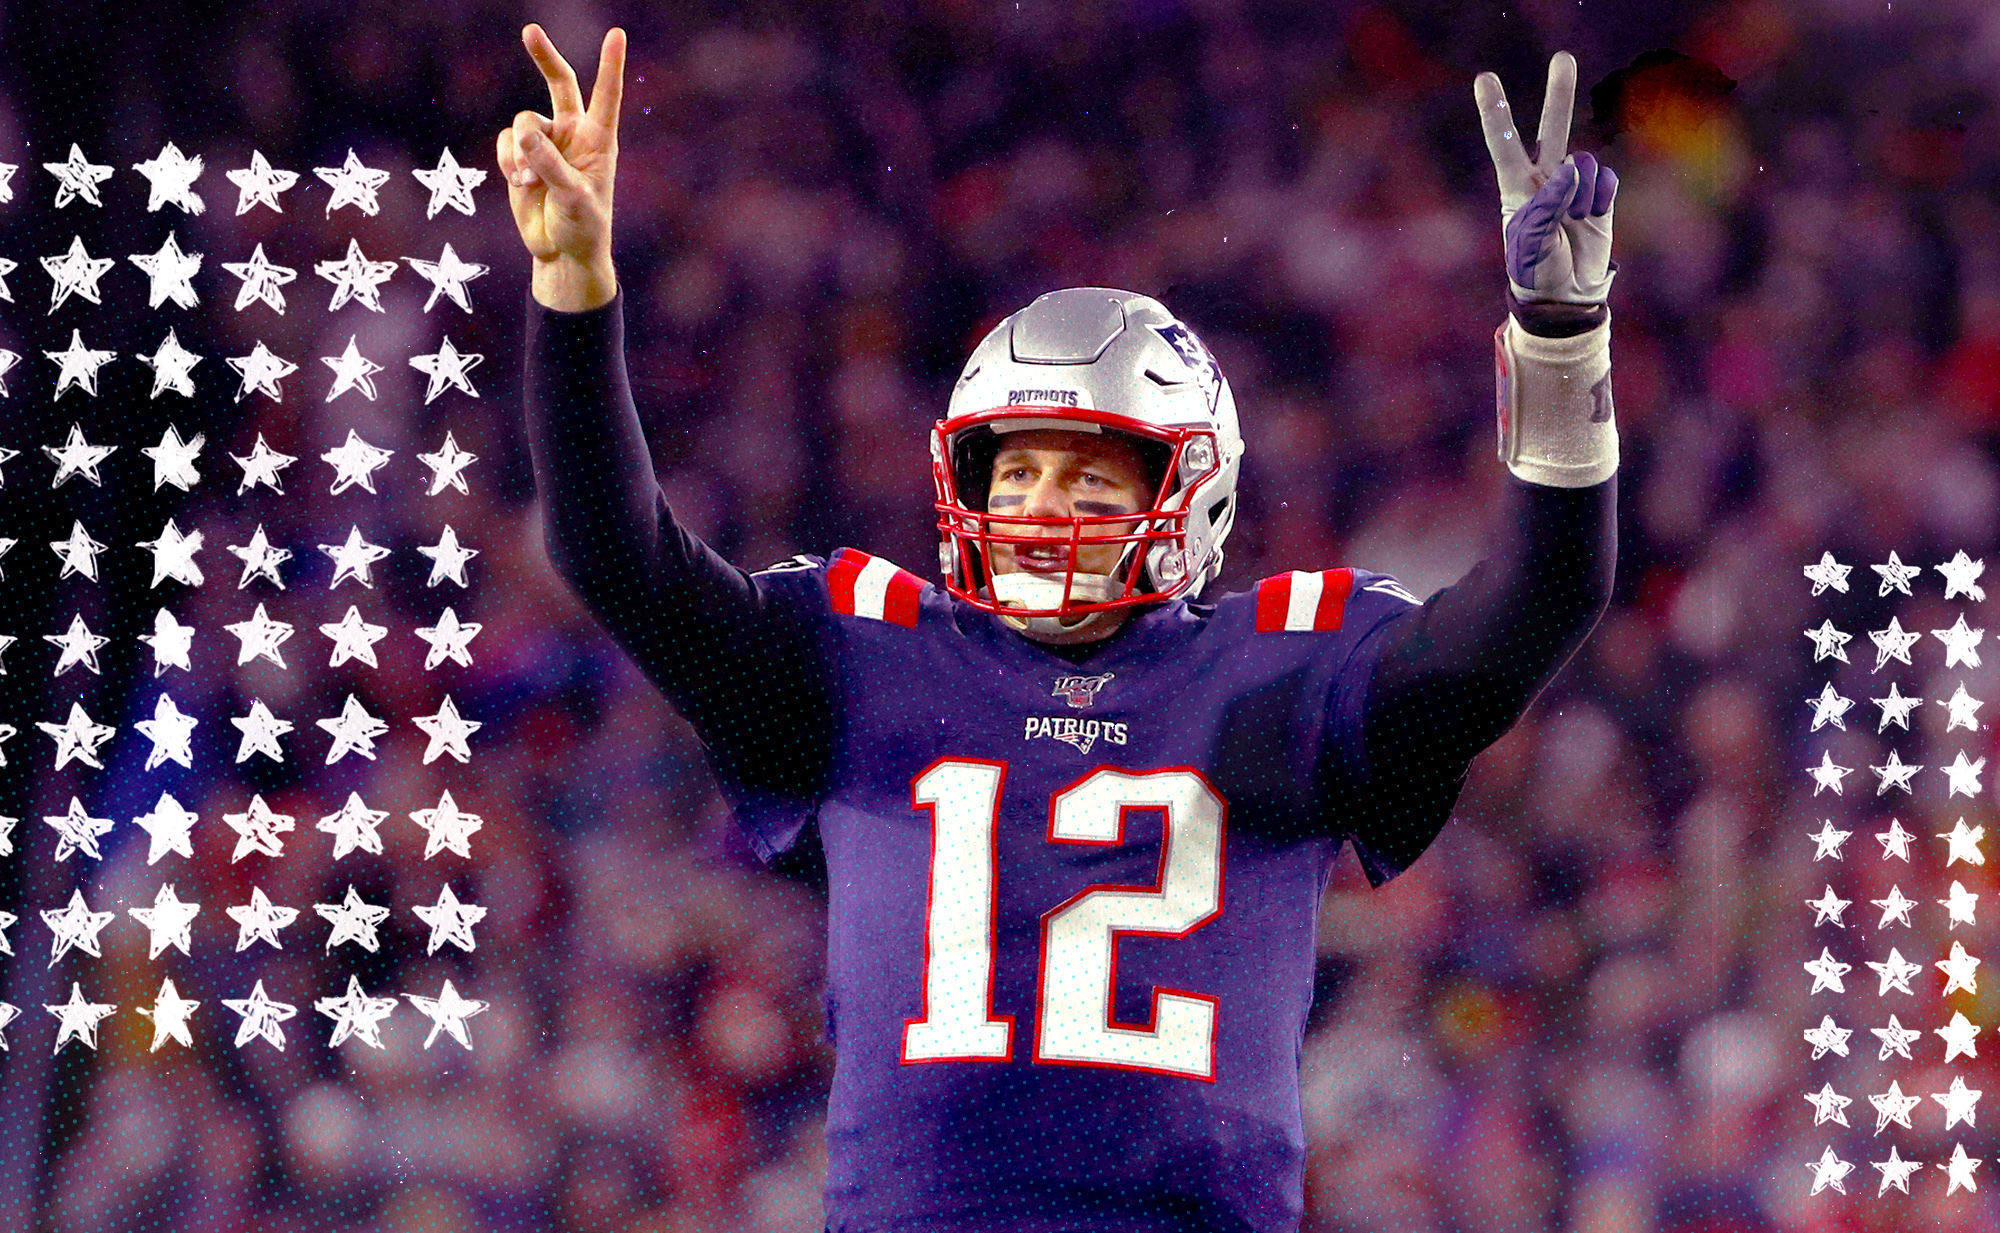 Patriots QB Tom Brady raises both arms and holds up two fingers on each hand